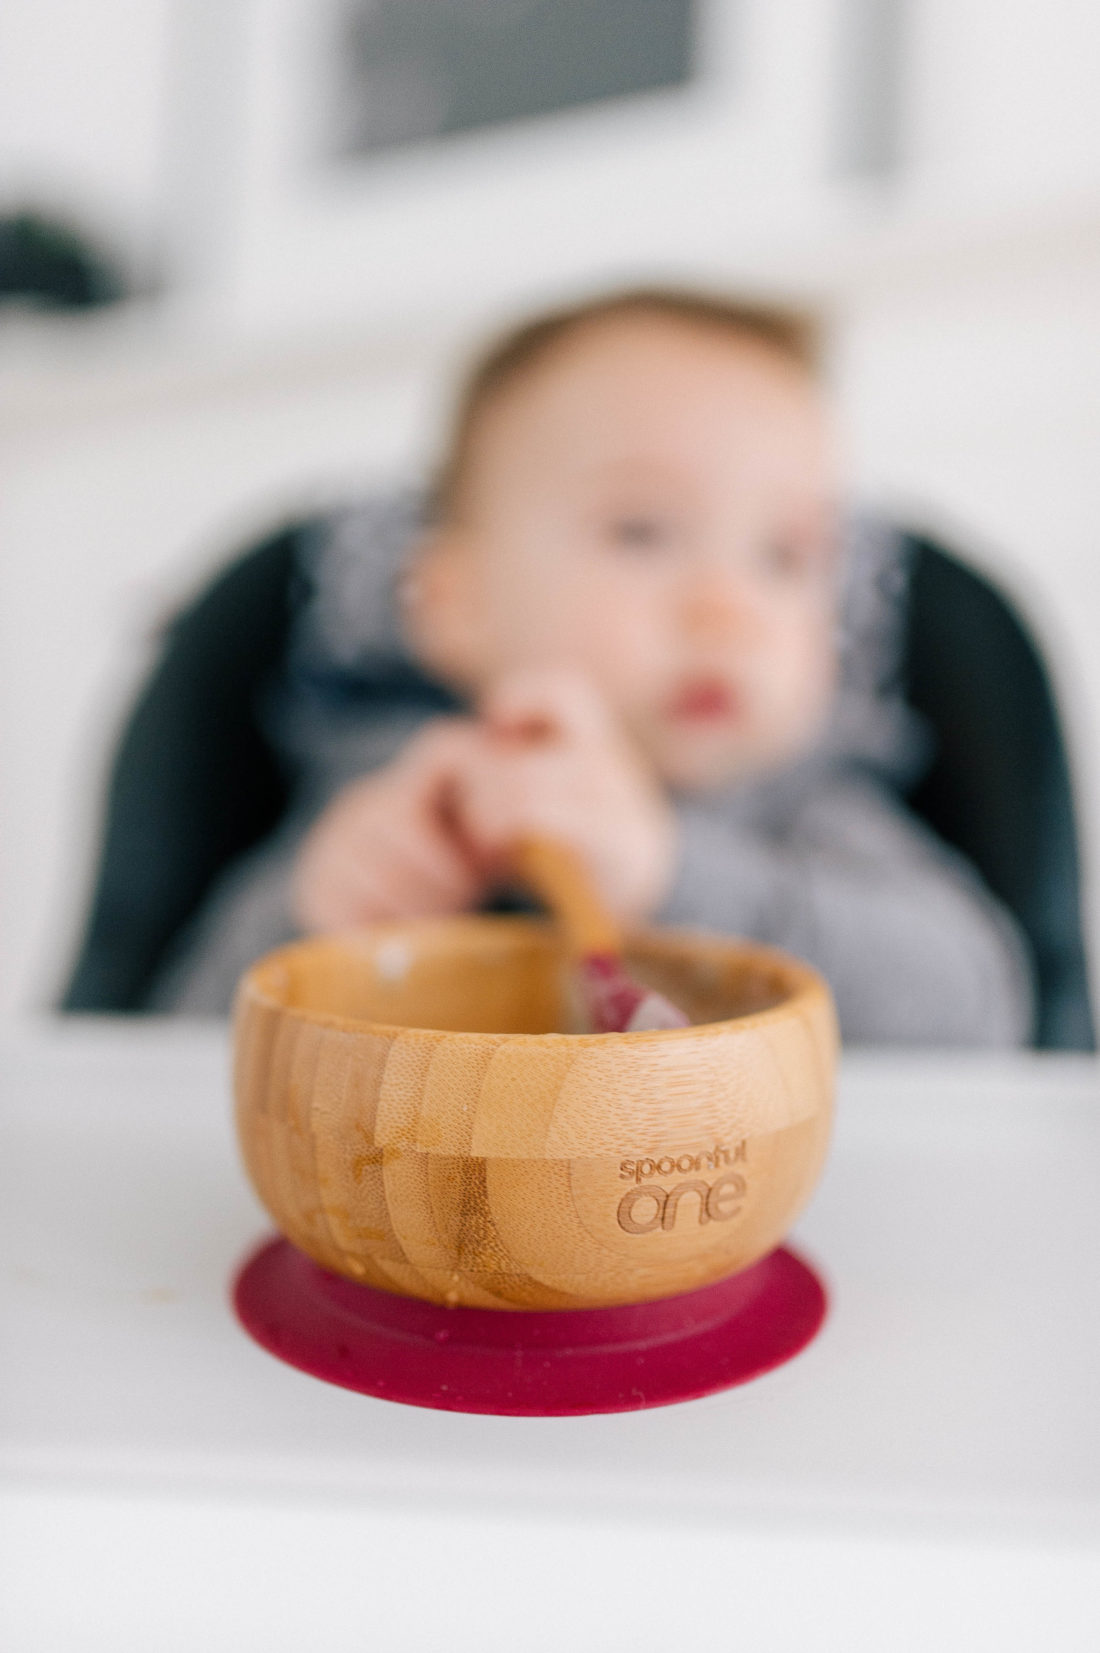 Major Martino eats from a SpoonfulOne bowl in his high chair